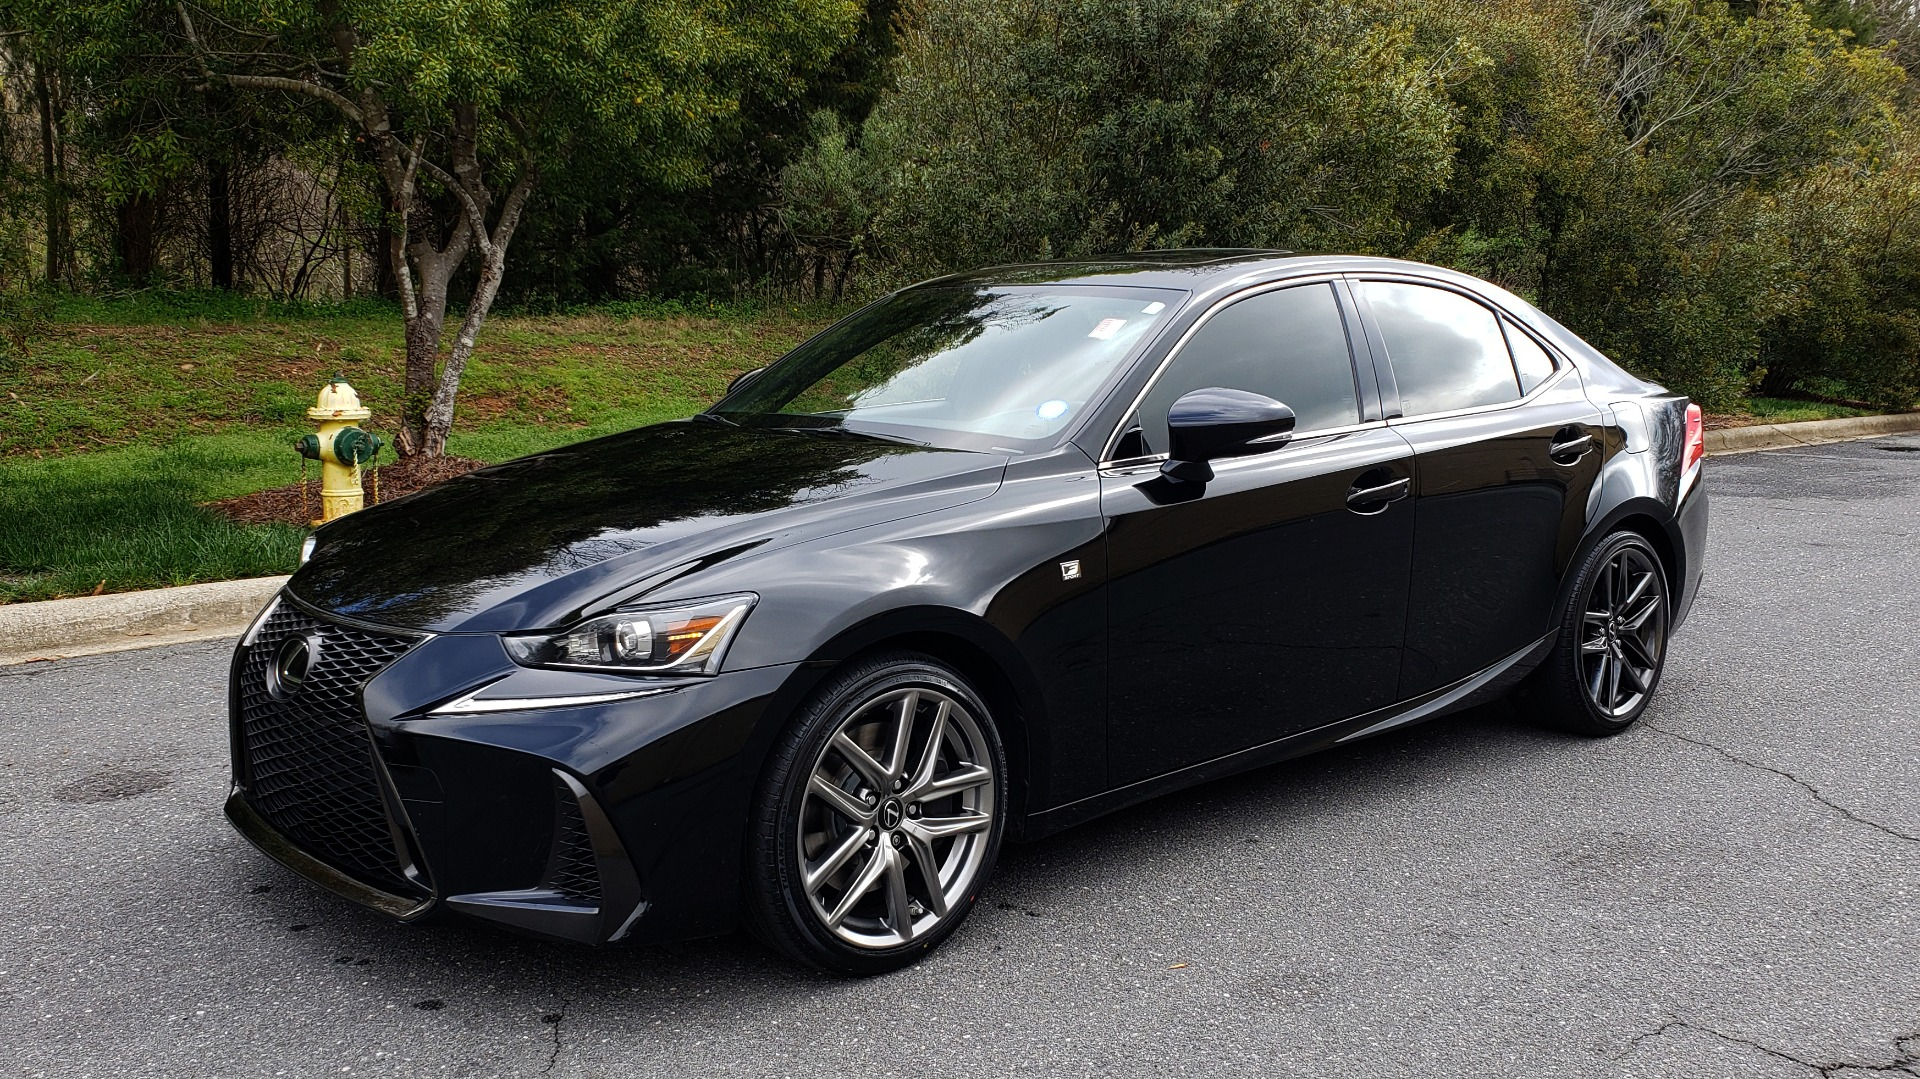 Used 2017 Lexus IS 200T F-SPORT / SUNROOF / REARVIEW / VENT SEATS for sale Sold at Formula Imports in Charlotte NC 28227 1